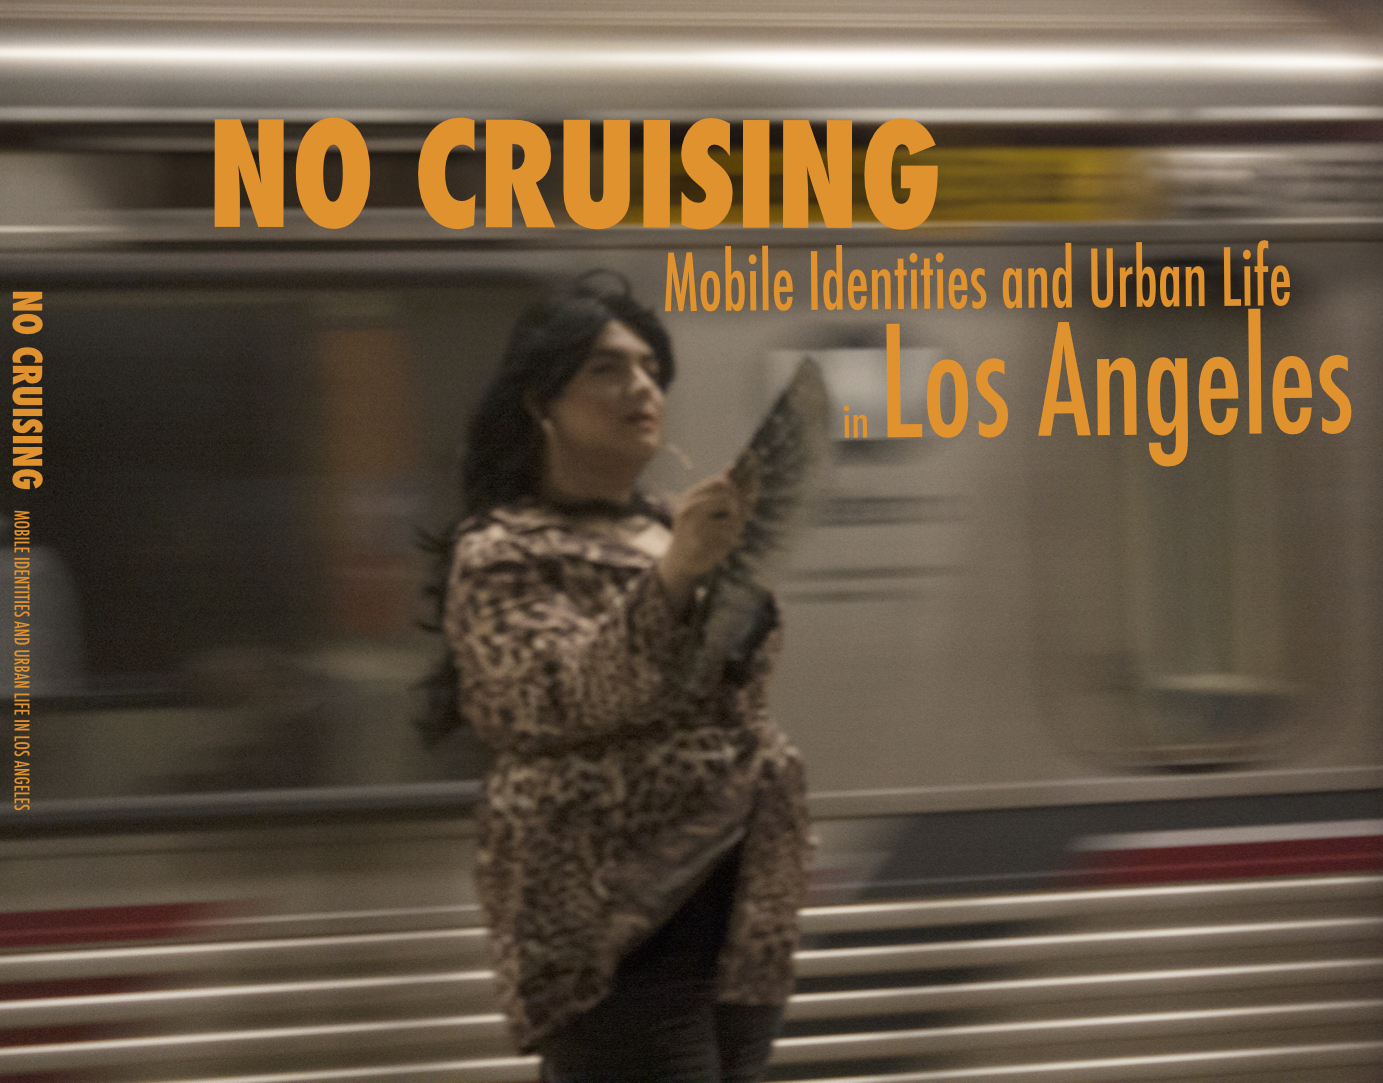 Book cover for 'No Cruising,' - A drag queen in a leopard-print blouse stands in front of a train, fanning herself with a lacy fan